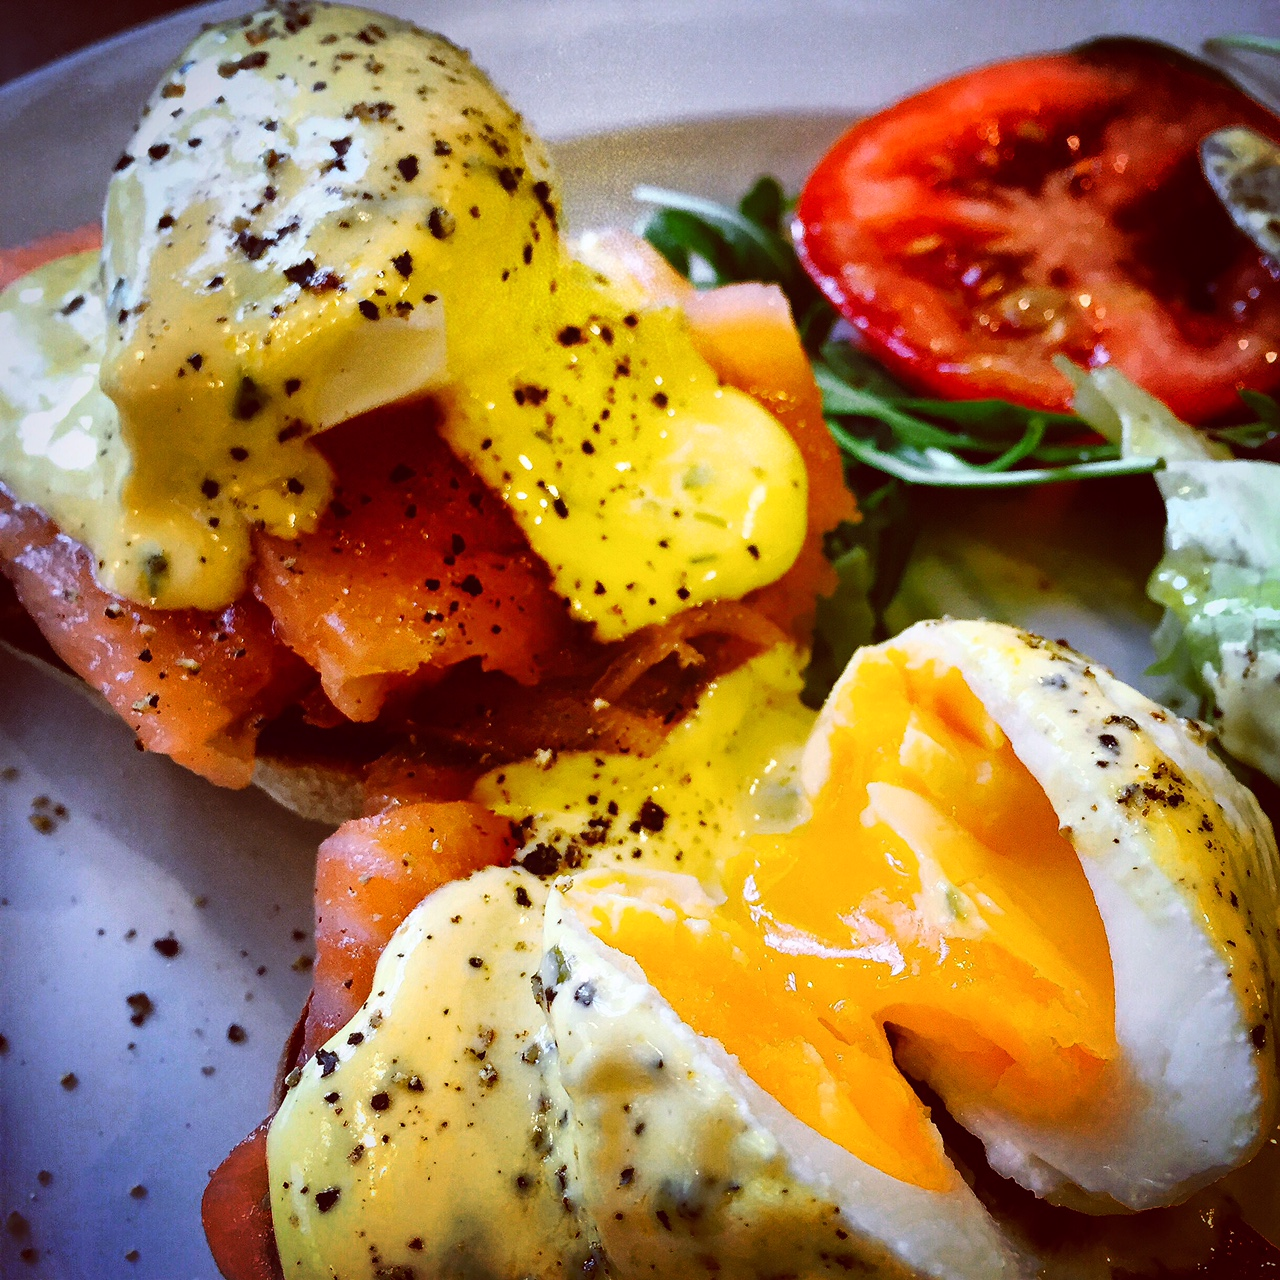 BREAKFAST AT CAFÉ ROUTE